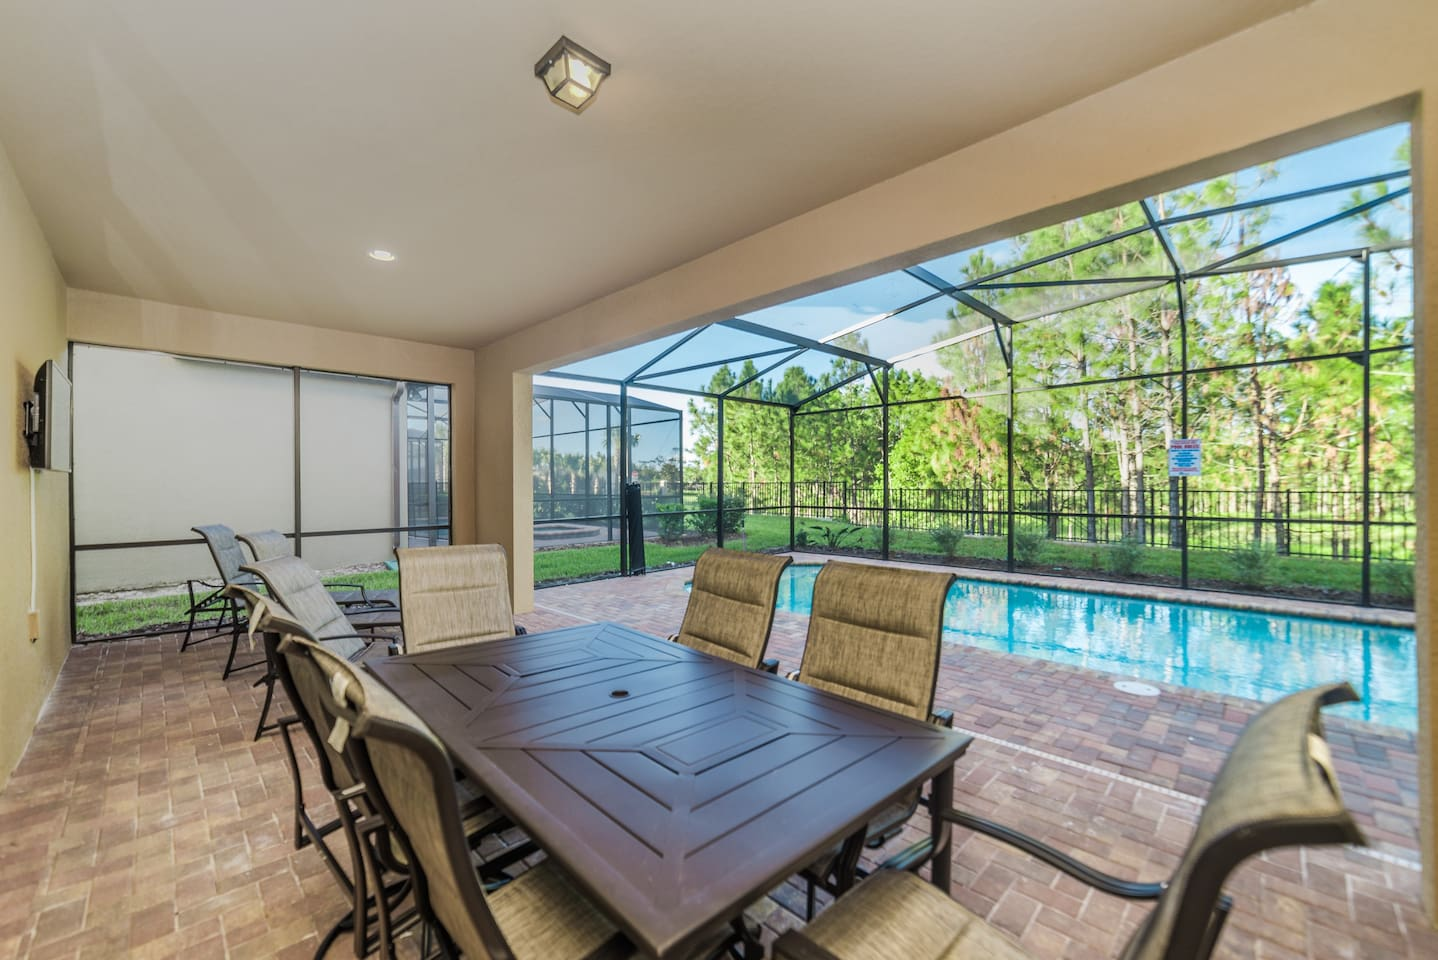 dine on your private pool deck